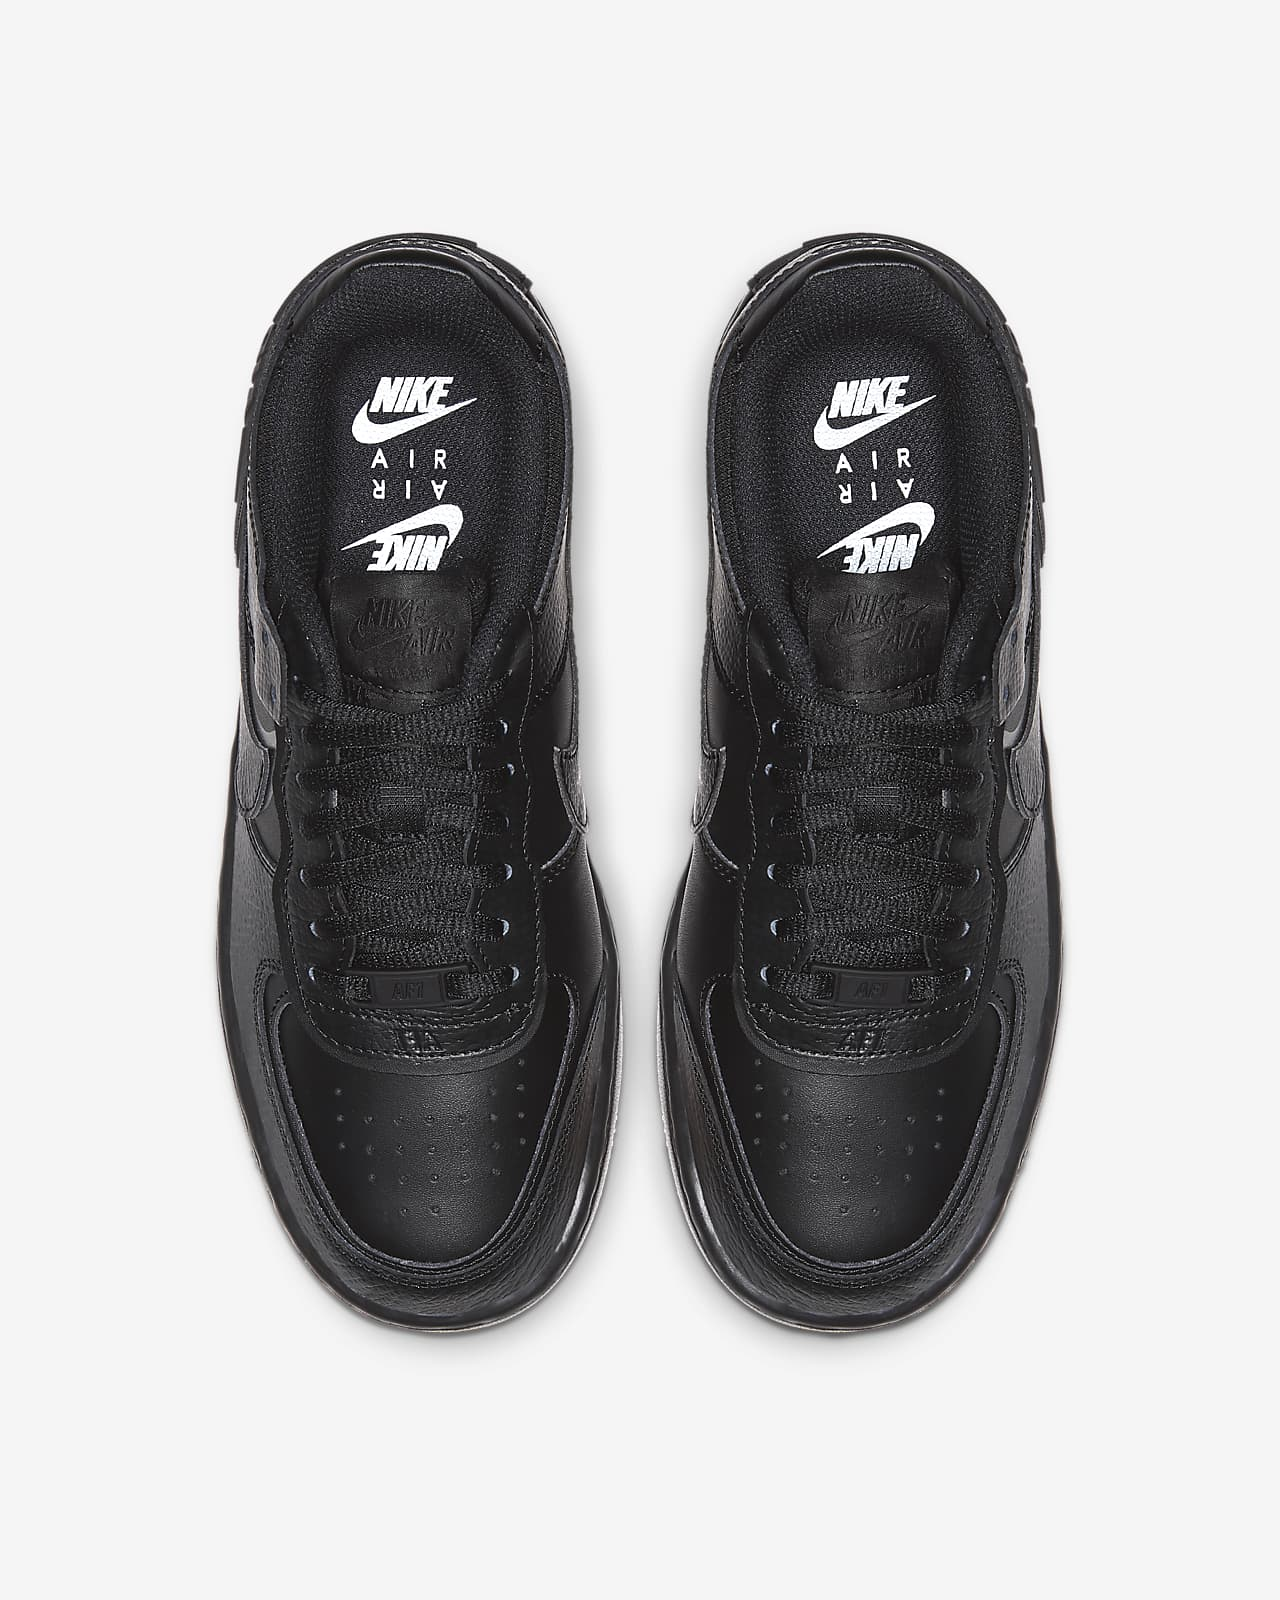 Nike Air Force 1 Shadow Women S Shoe Nike Si The nike air force 1 becomes the first basketball shoe to bring soft, springy nike air cushioning to the game. nike air force 1 shadow women s shoe